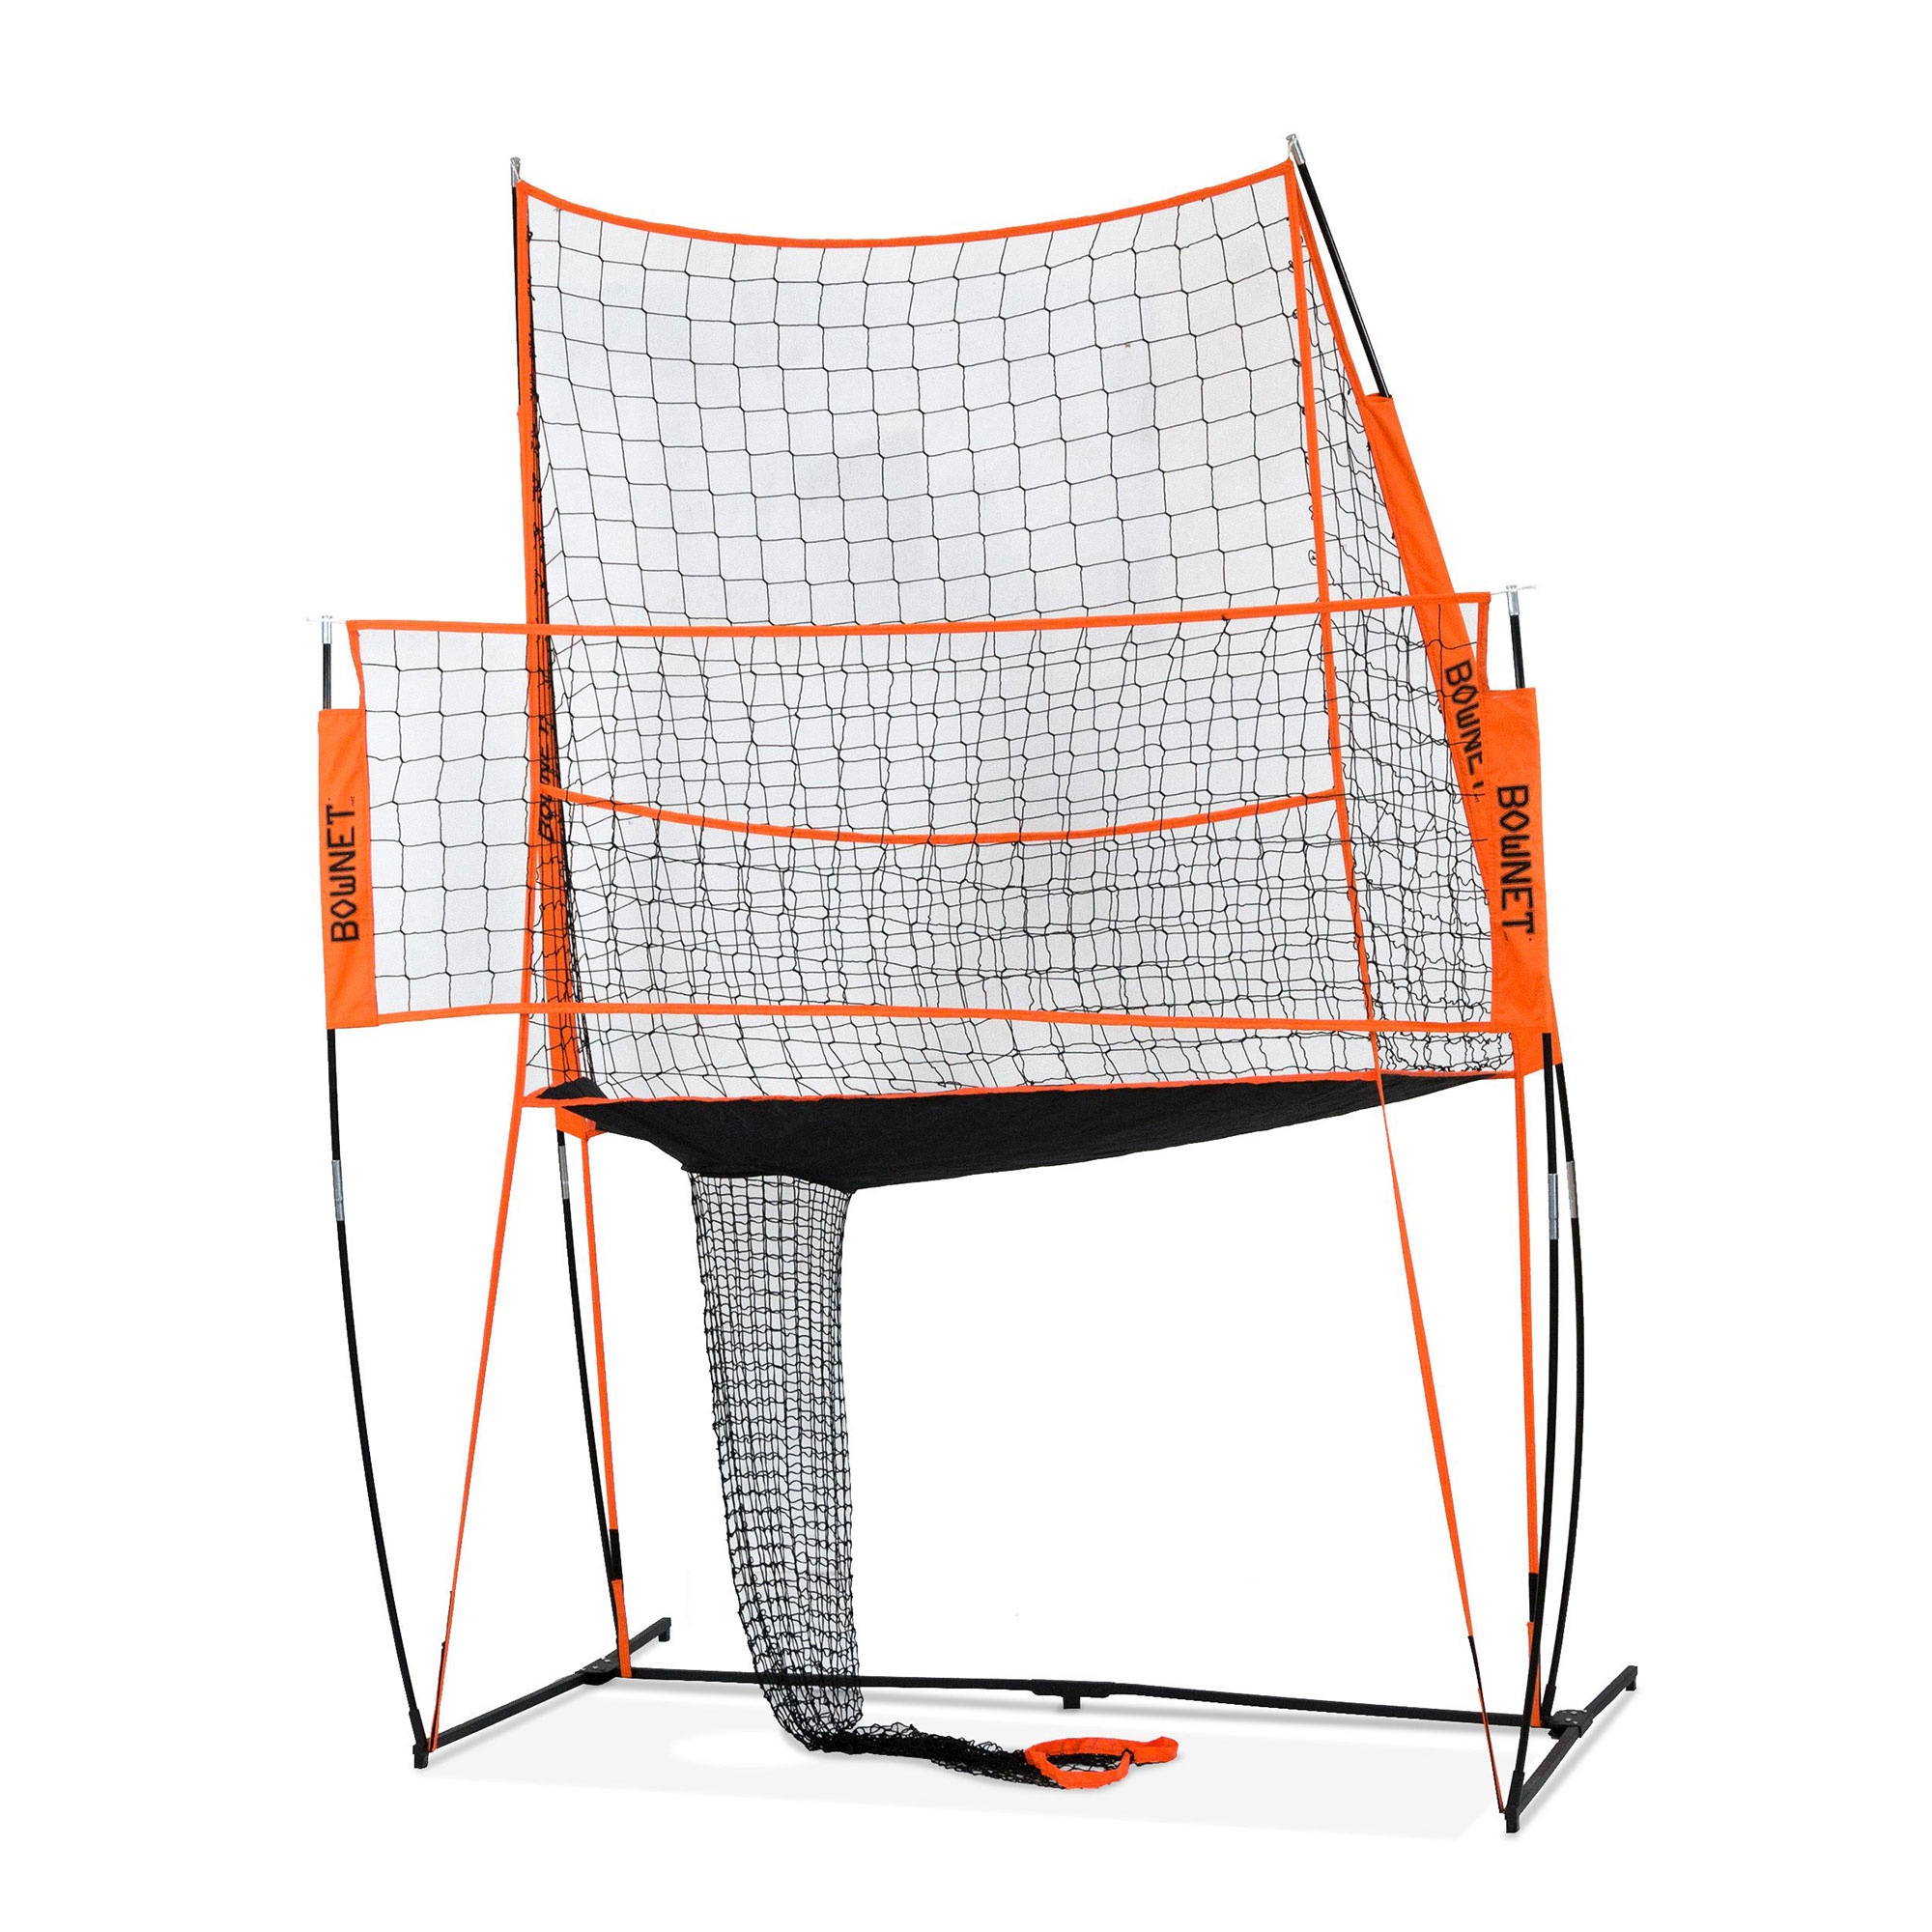 Bownet Portable Indoor Outdoor Spike Trainer Volleyball Practice Net Station